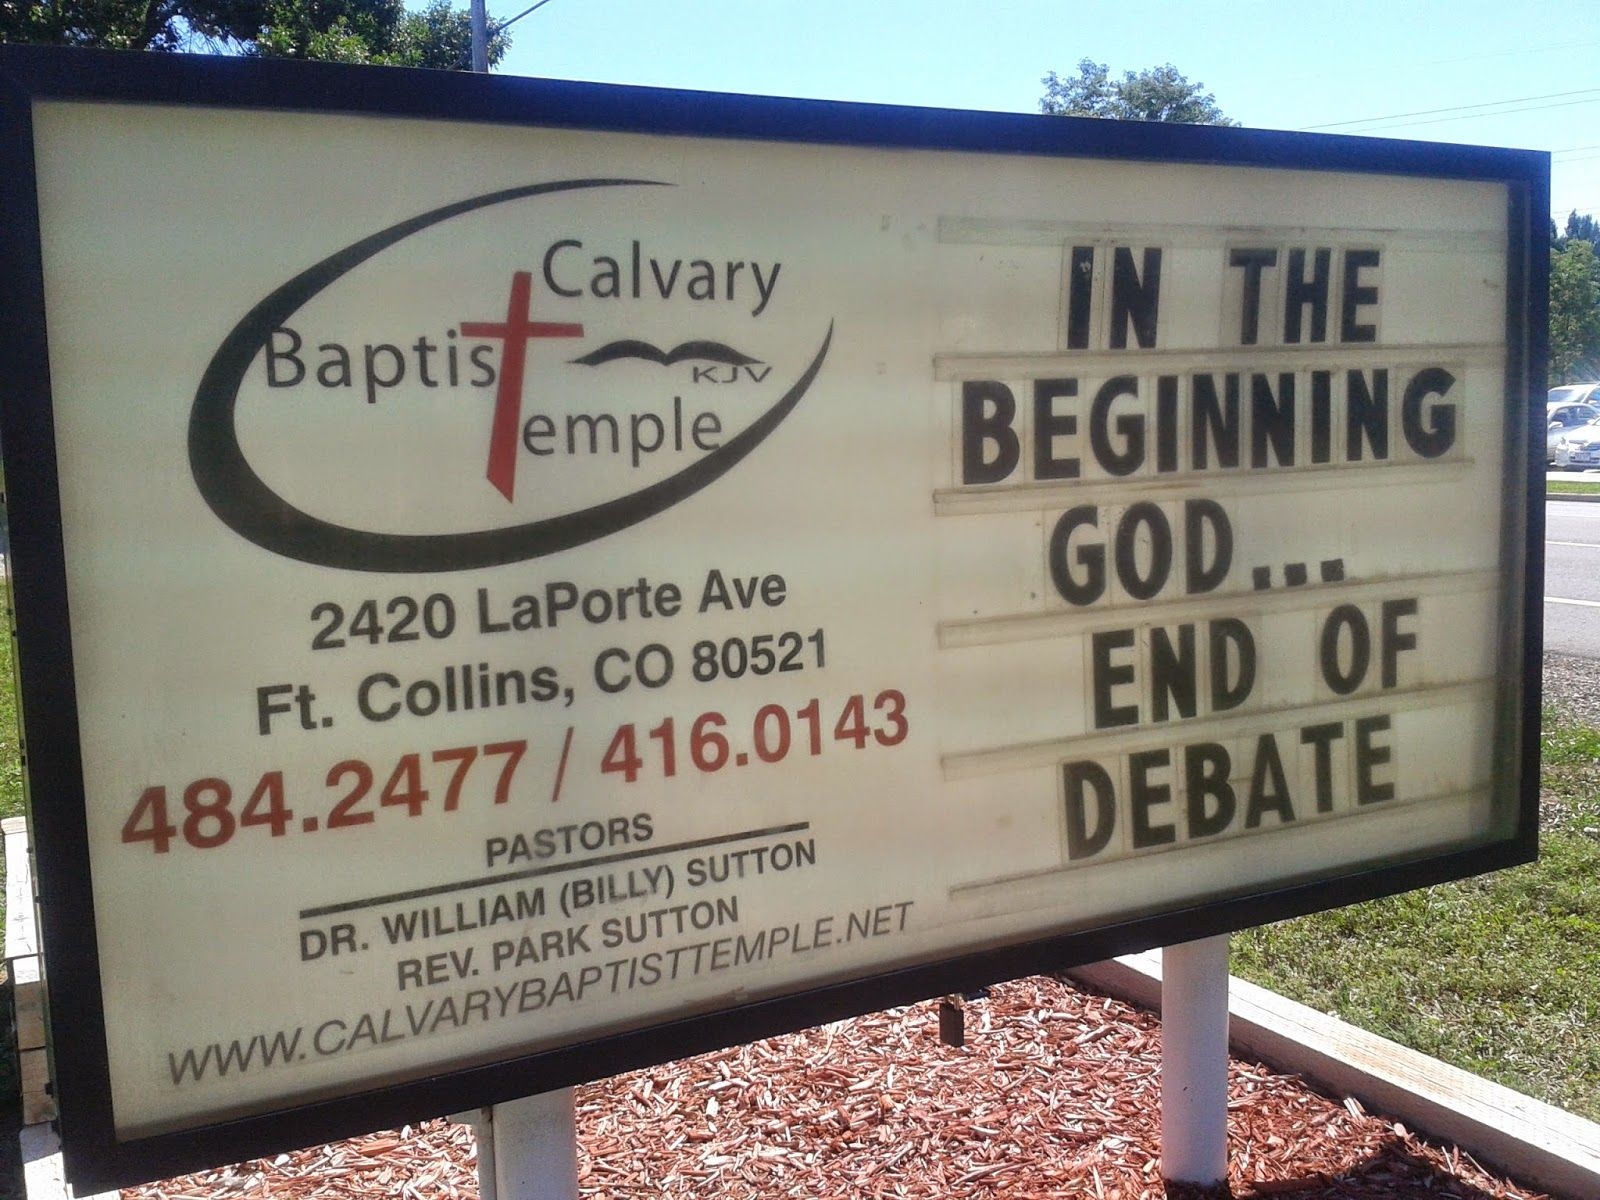 Church Sign Quotes Adorable In The Beginning Goddebate Over  Church Sign Board Message